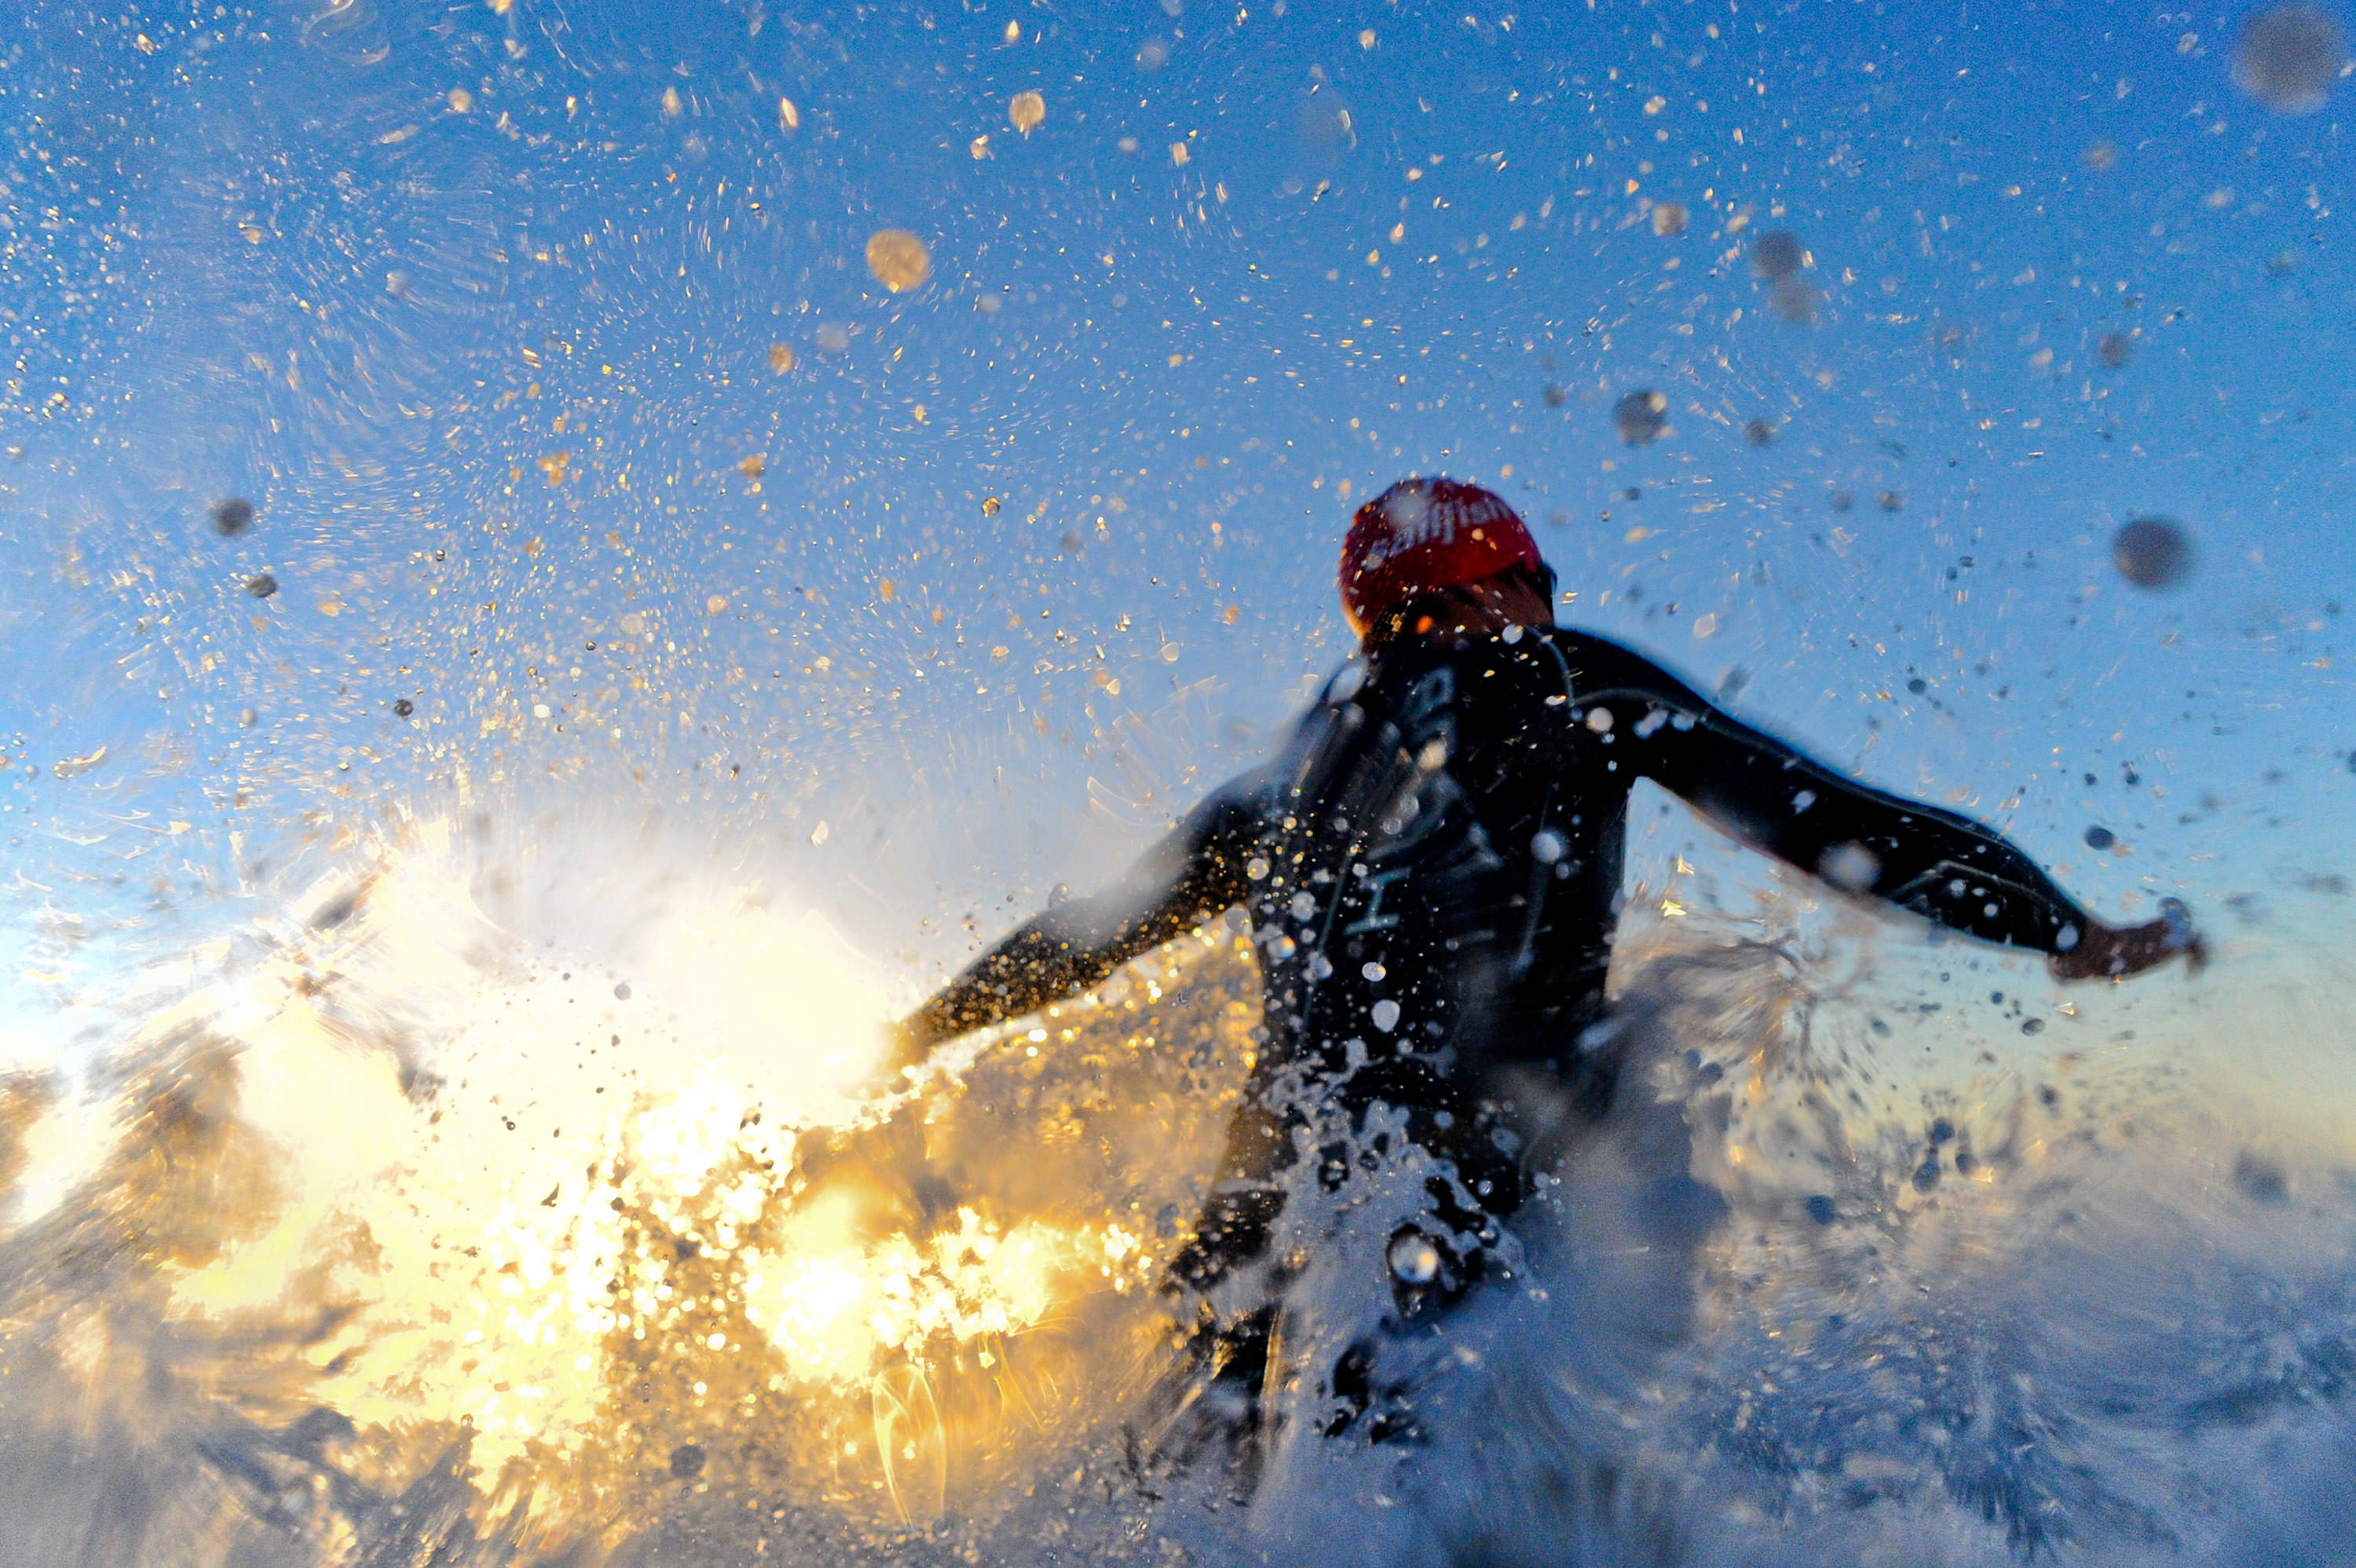 Many triathletes experience a fear of the open water. There are a number of things you can do to help prepare yourself and calm your nerves on race morning.